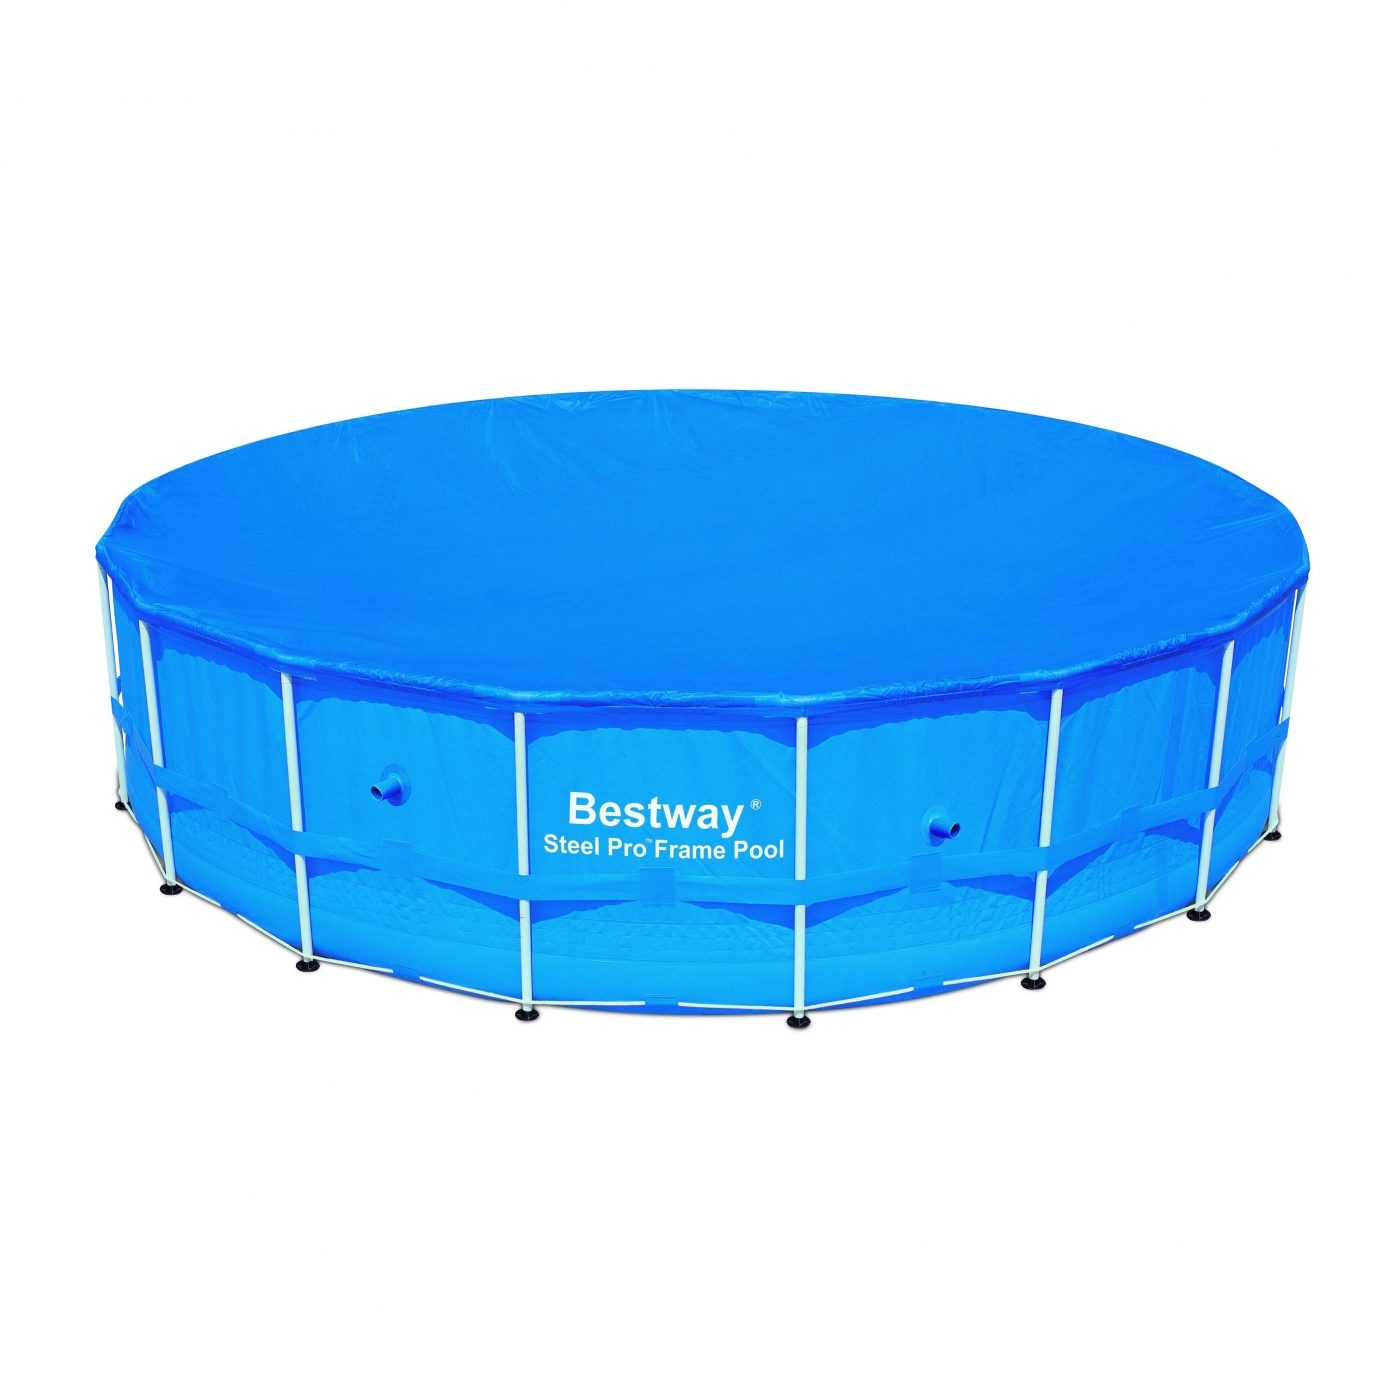 Cobertor piscina steel pool 549 cm por 52 95 em planeta for Cobertor piscina